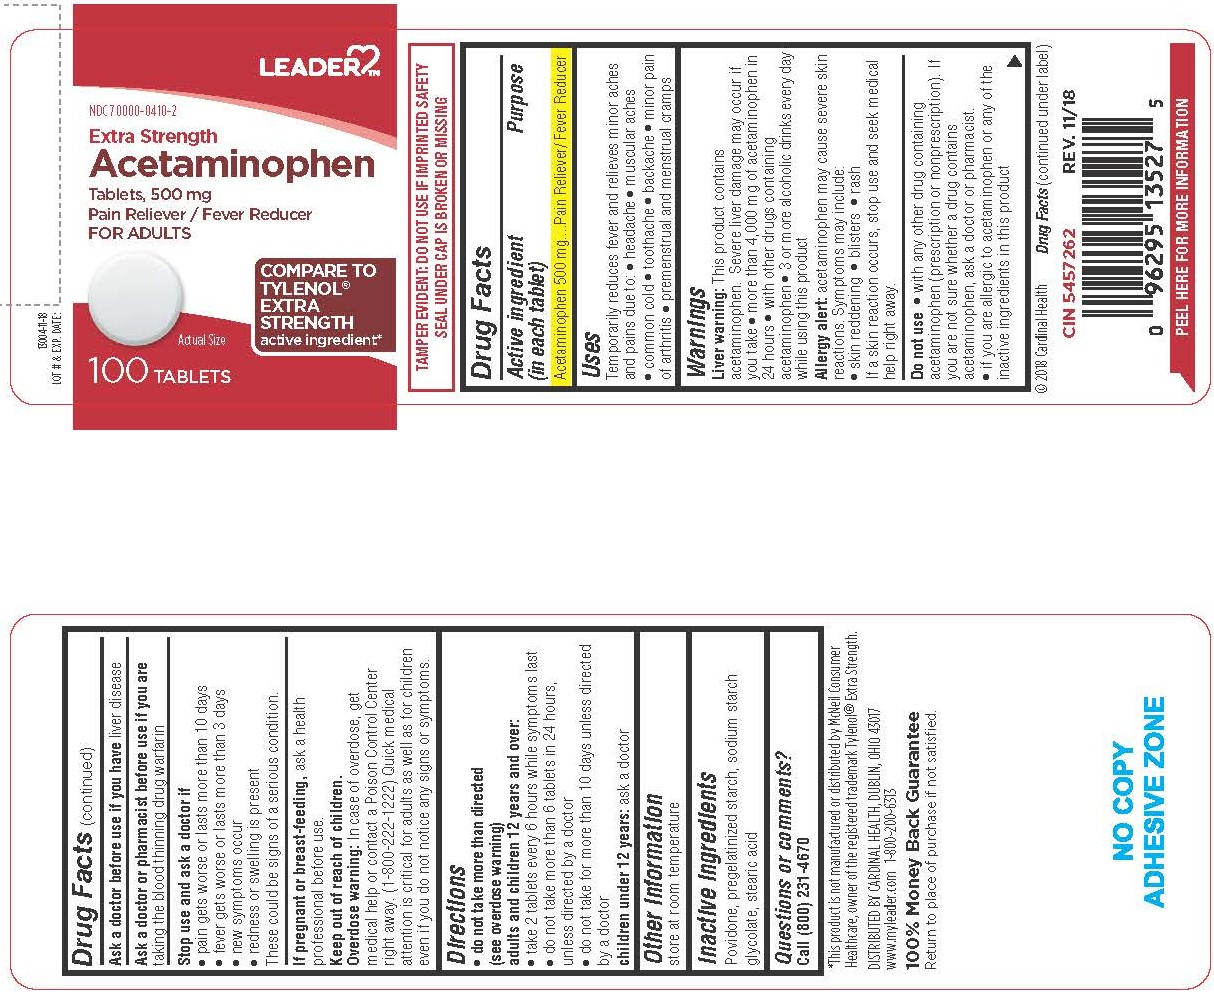 Acetaminophen (Acetaminophen)